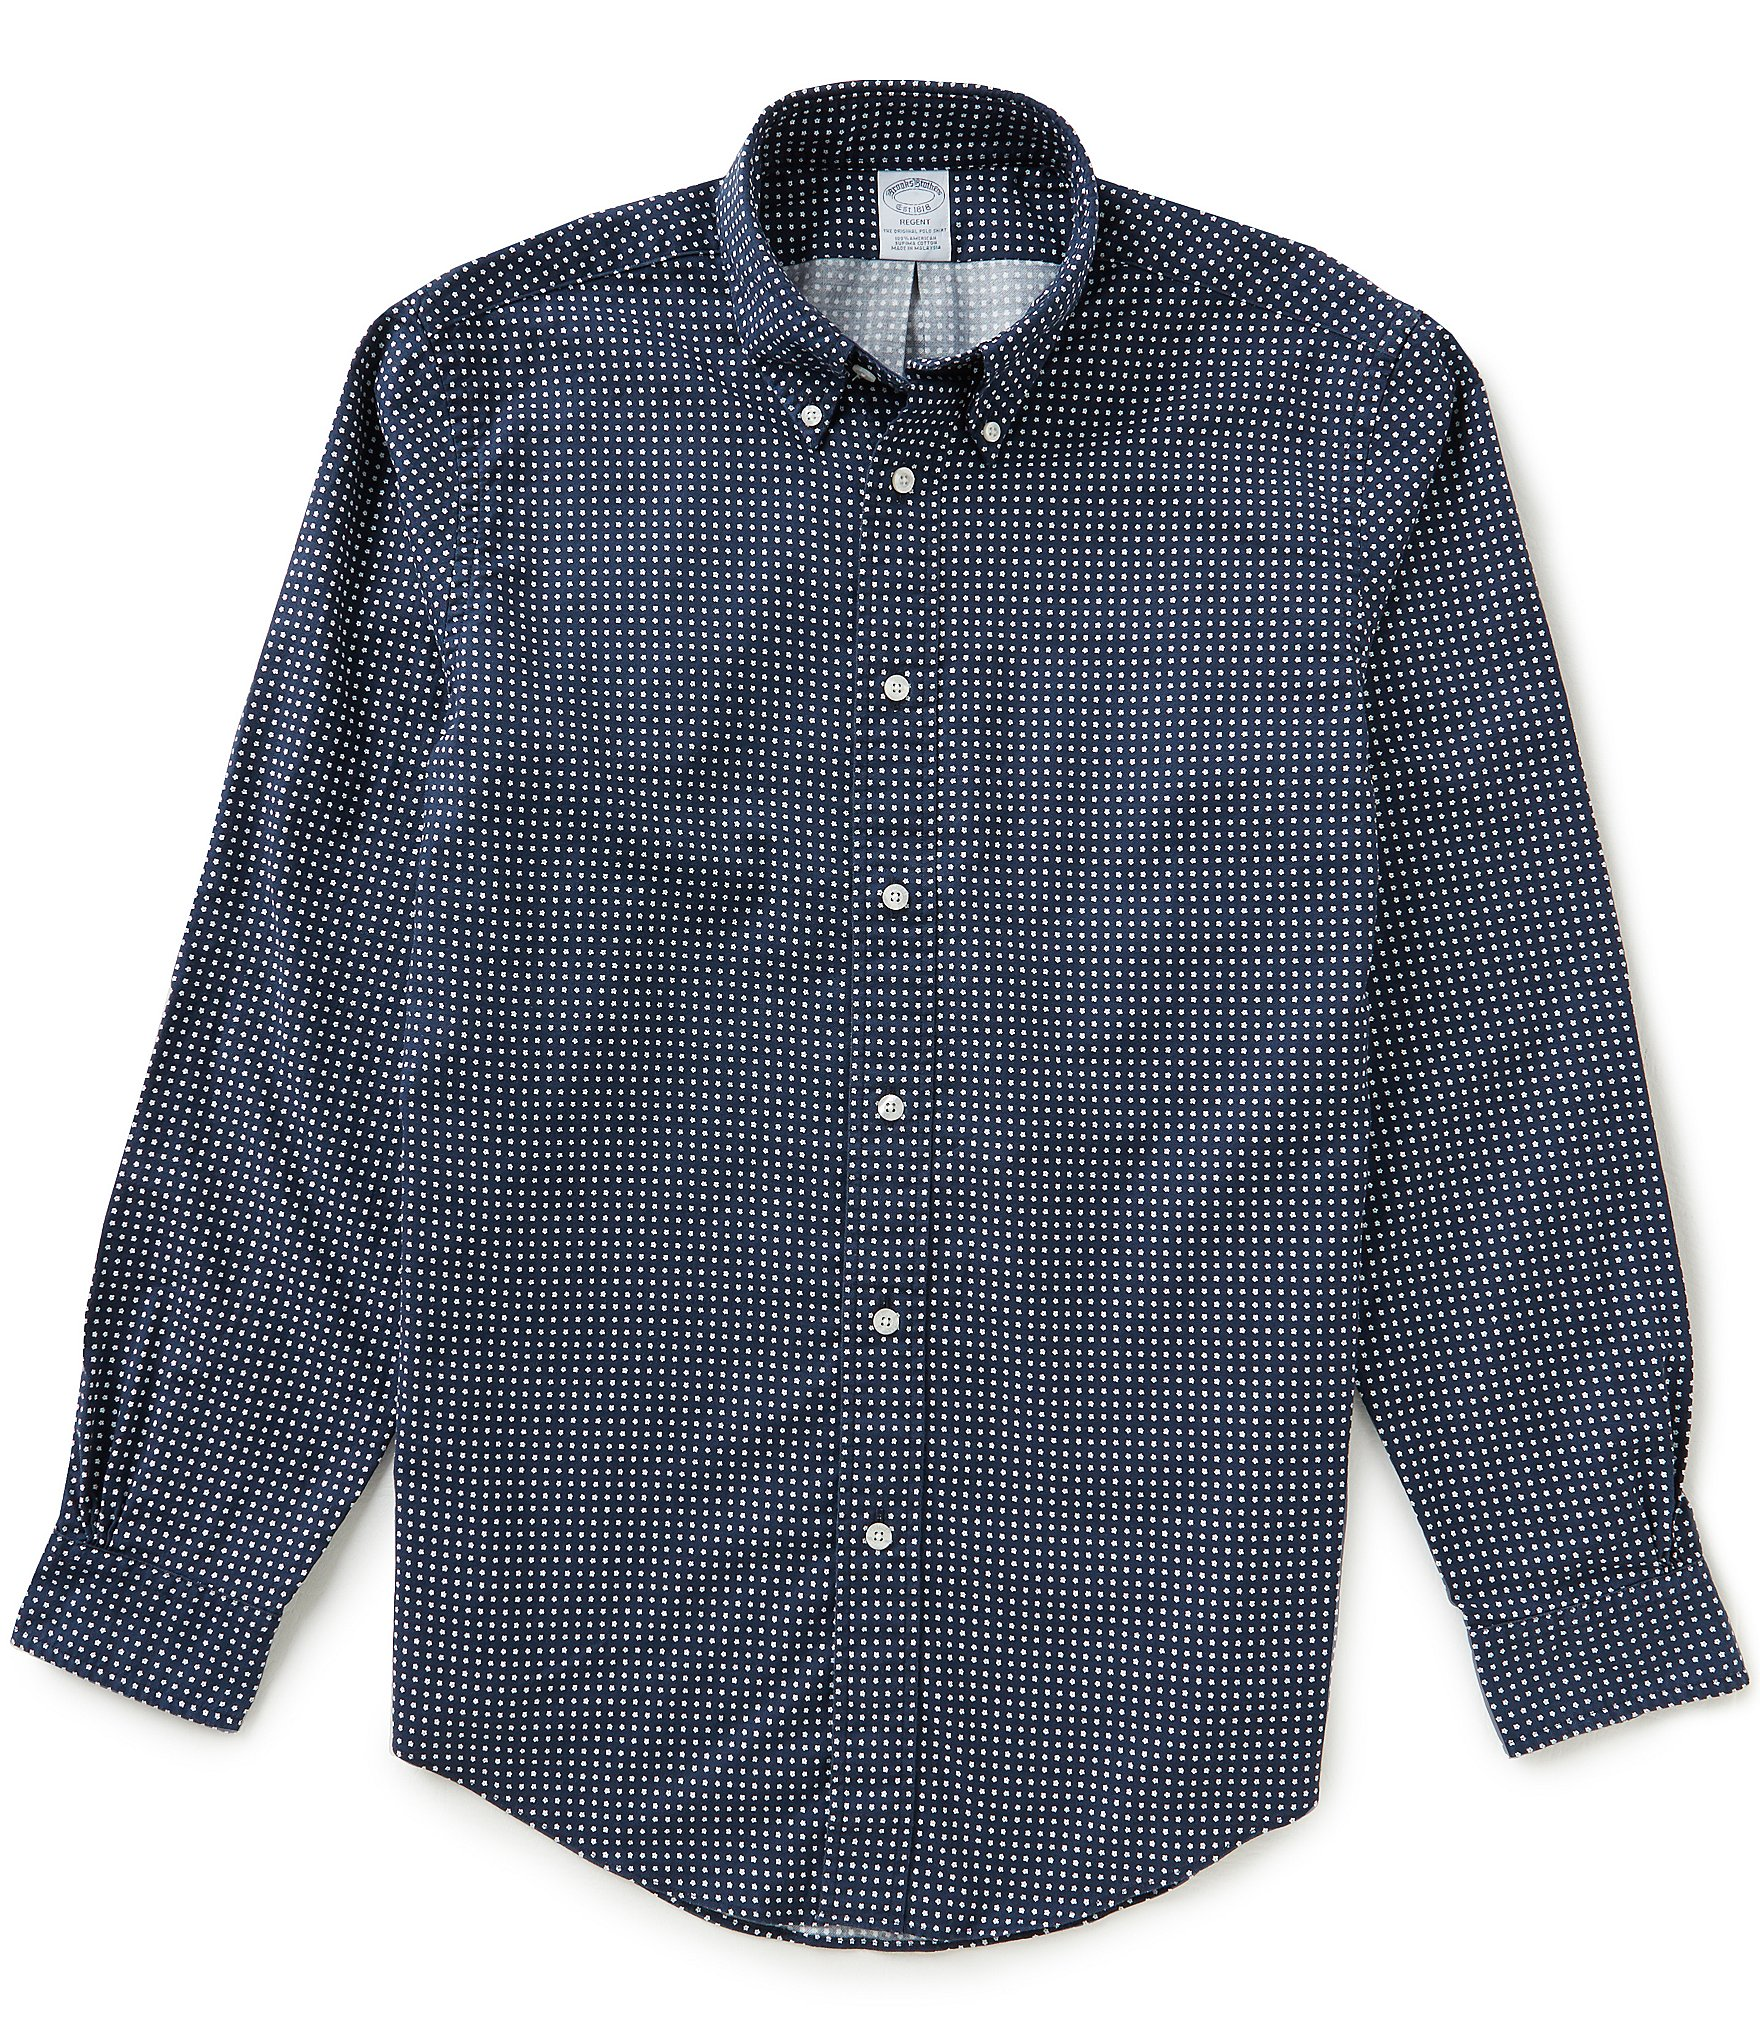 Brooks brothers non iron regent fit printed oxford long for Brooks brothers non iron shirt review